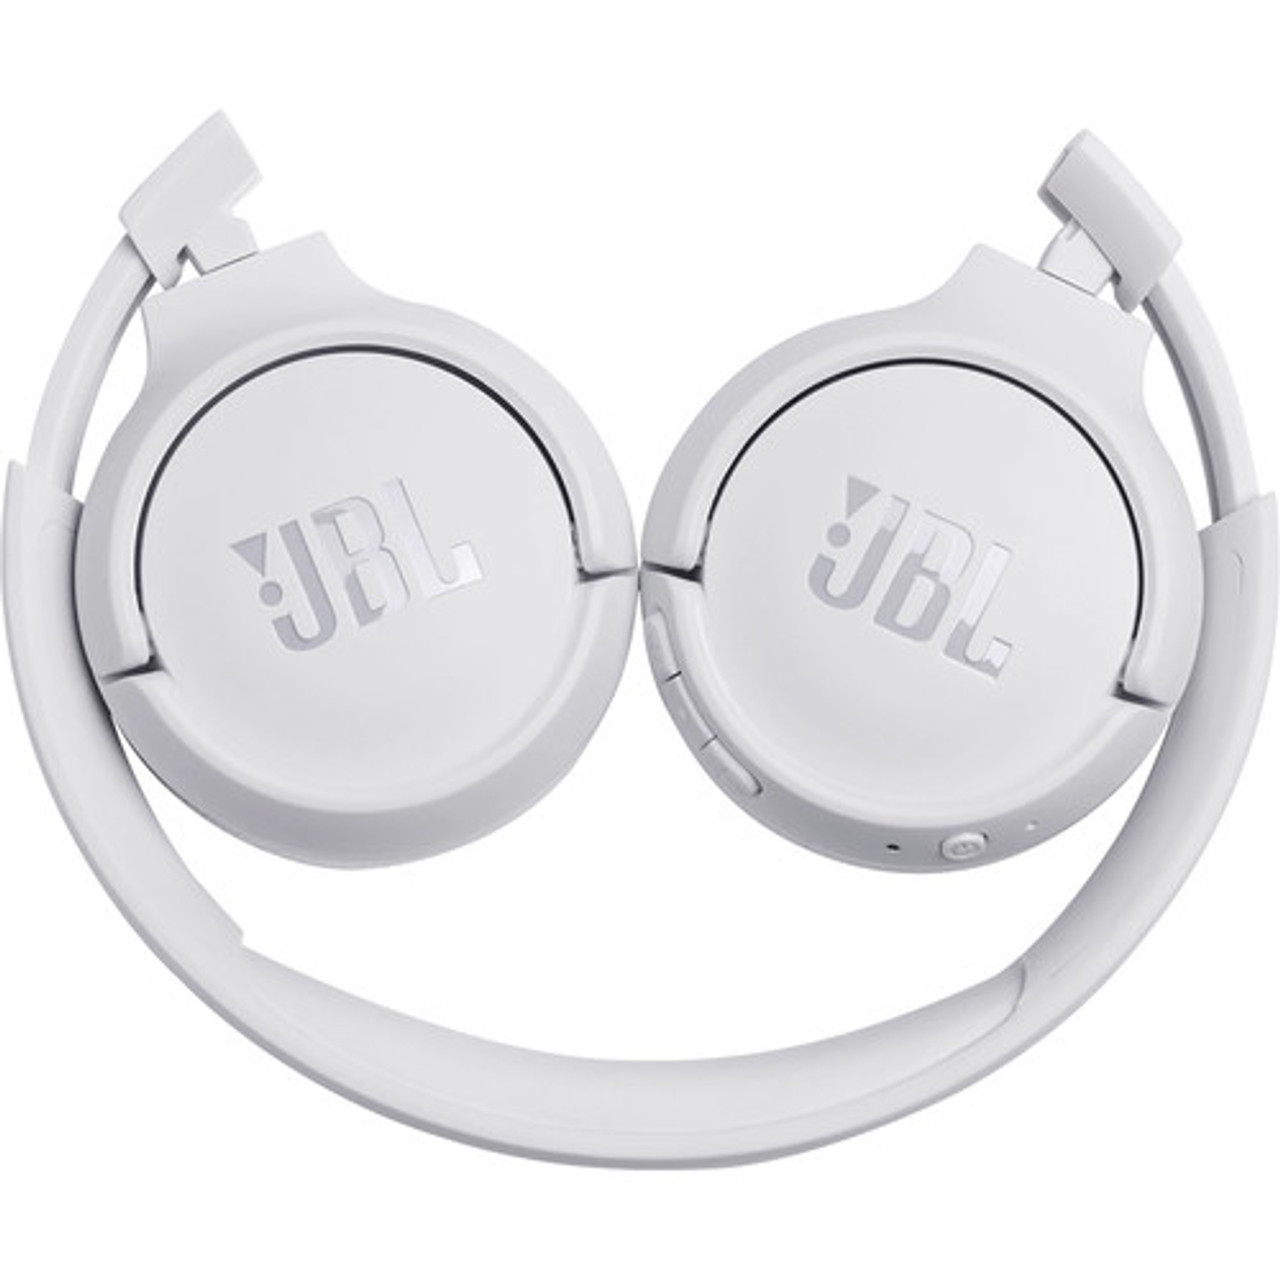 JBL JBLT500BTWHTAM-Z Tune 500BT Wireless On-Ear Headphones, White – Certified Refurbished